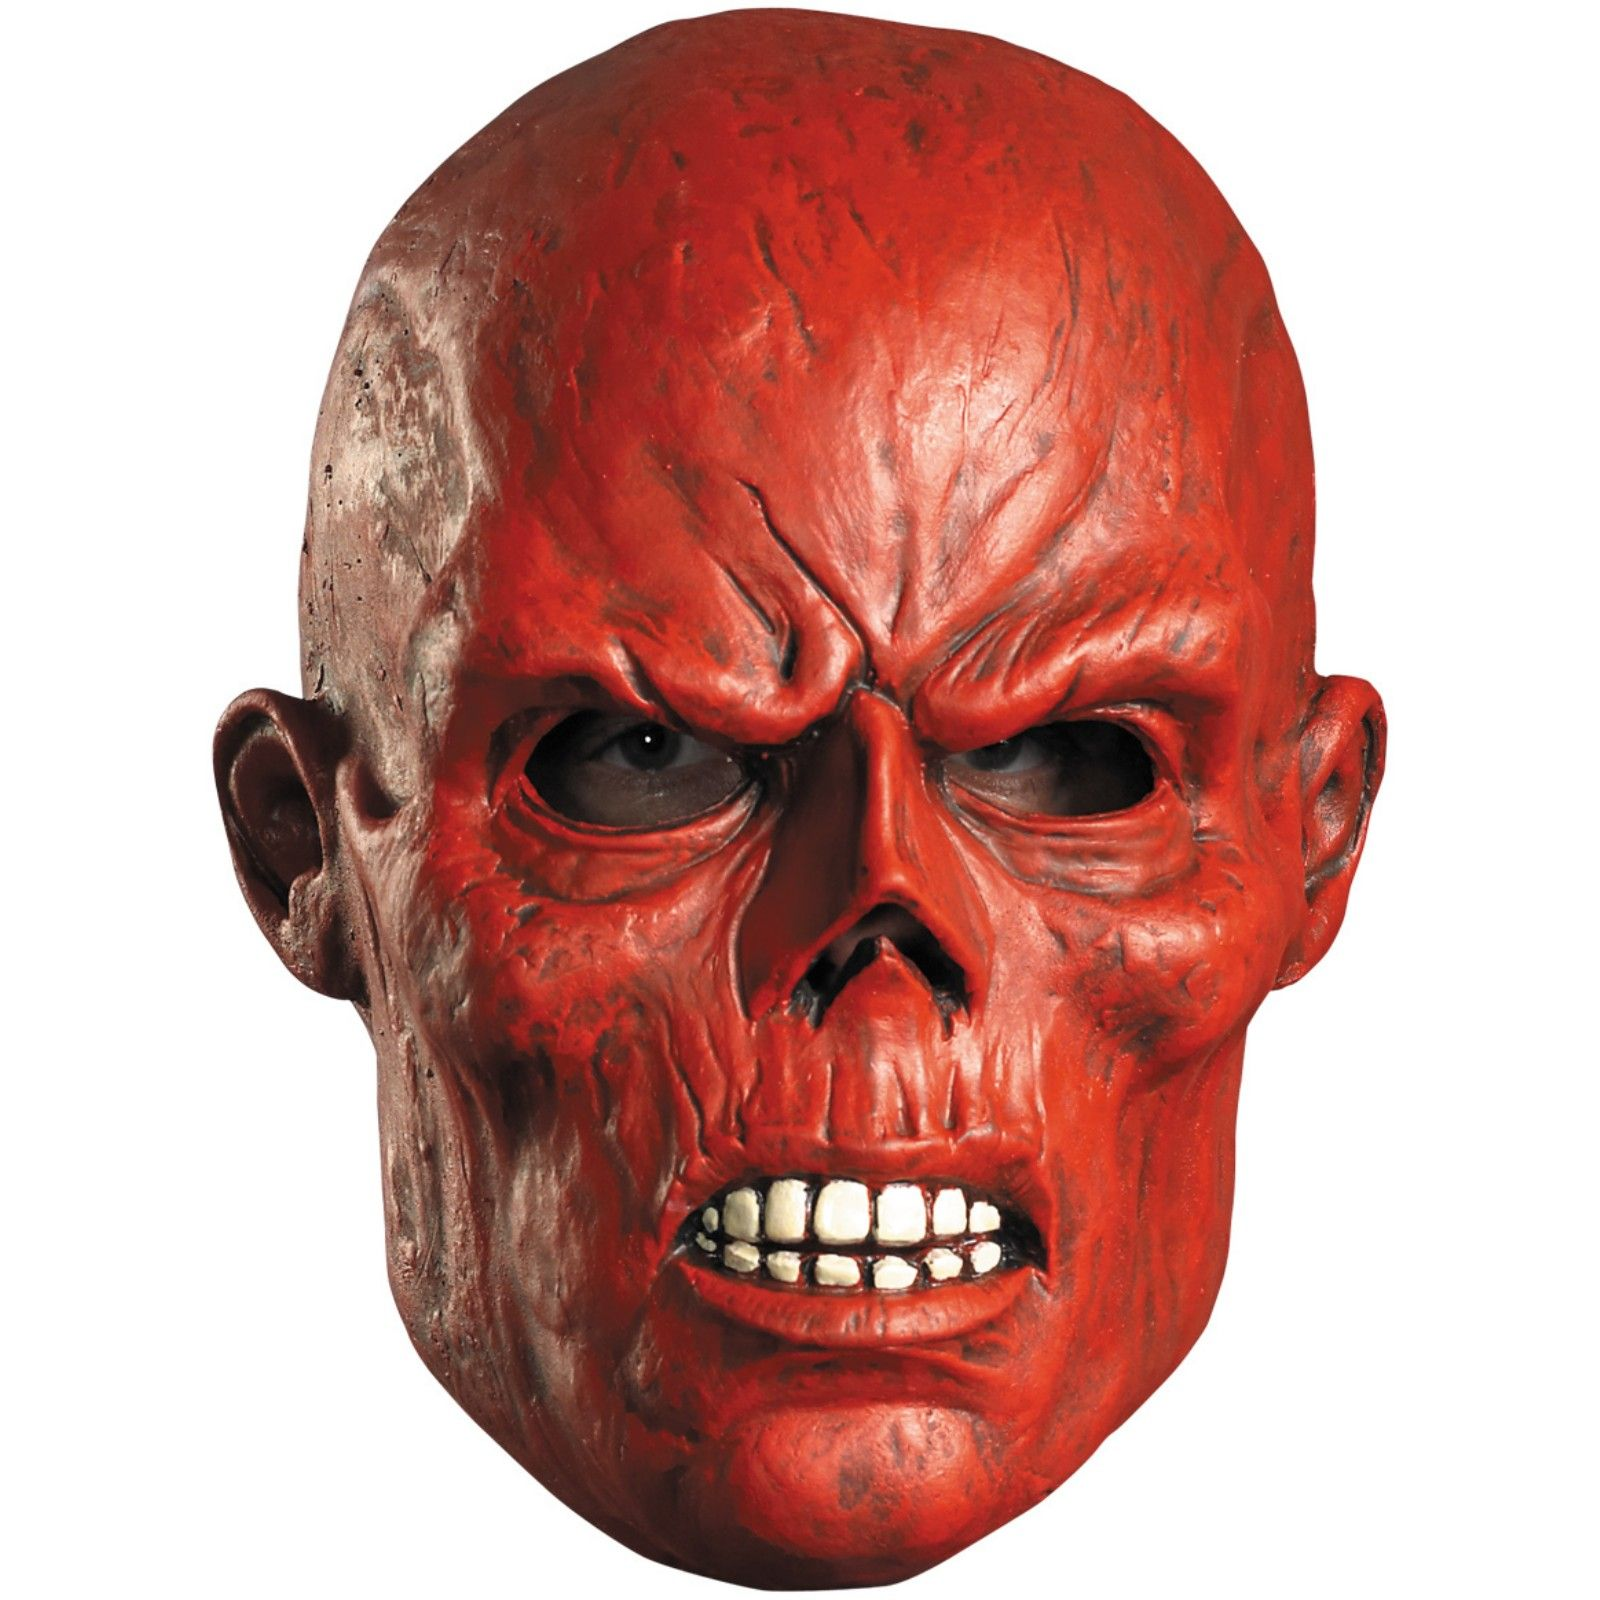 Red Skull Deluxe Mask $17 Masked